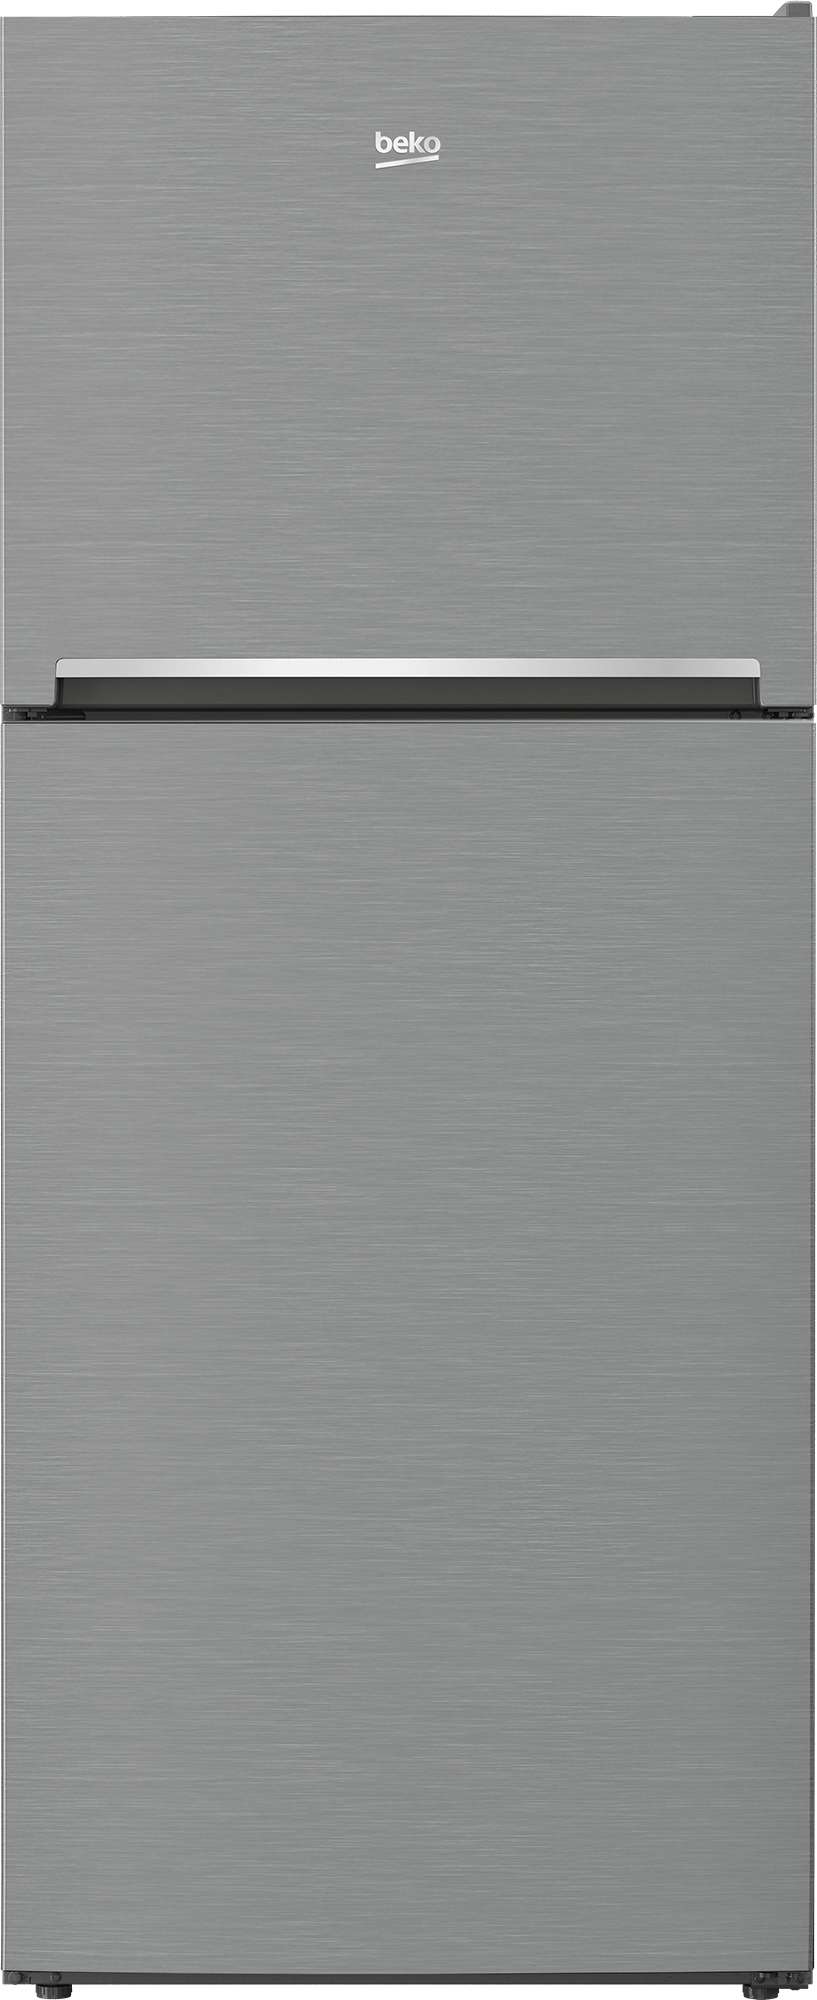 "Beko28"" Freezer Top Stainless Steel Refrigerator"